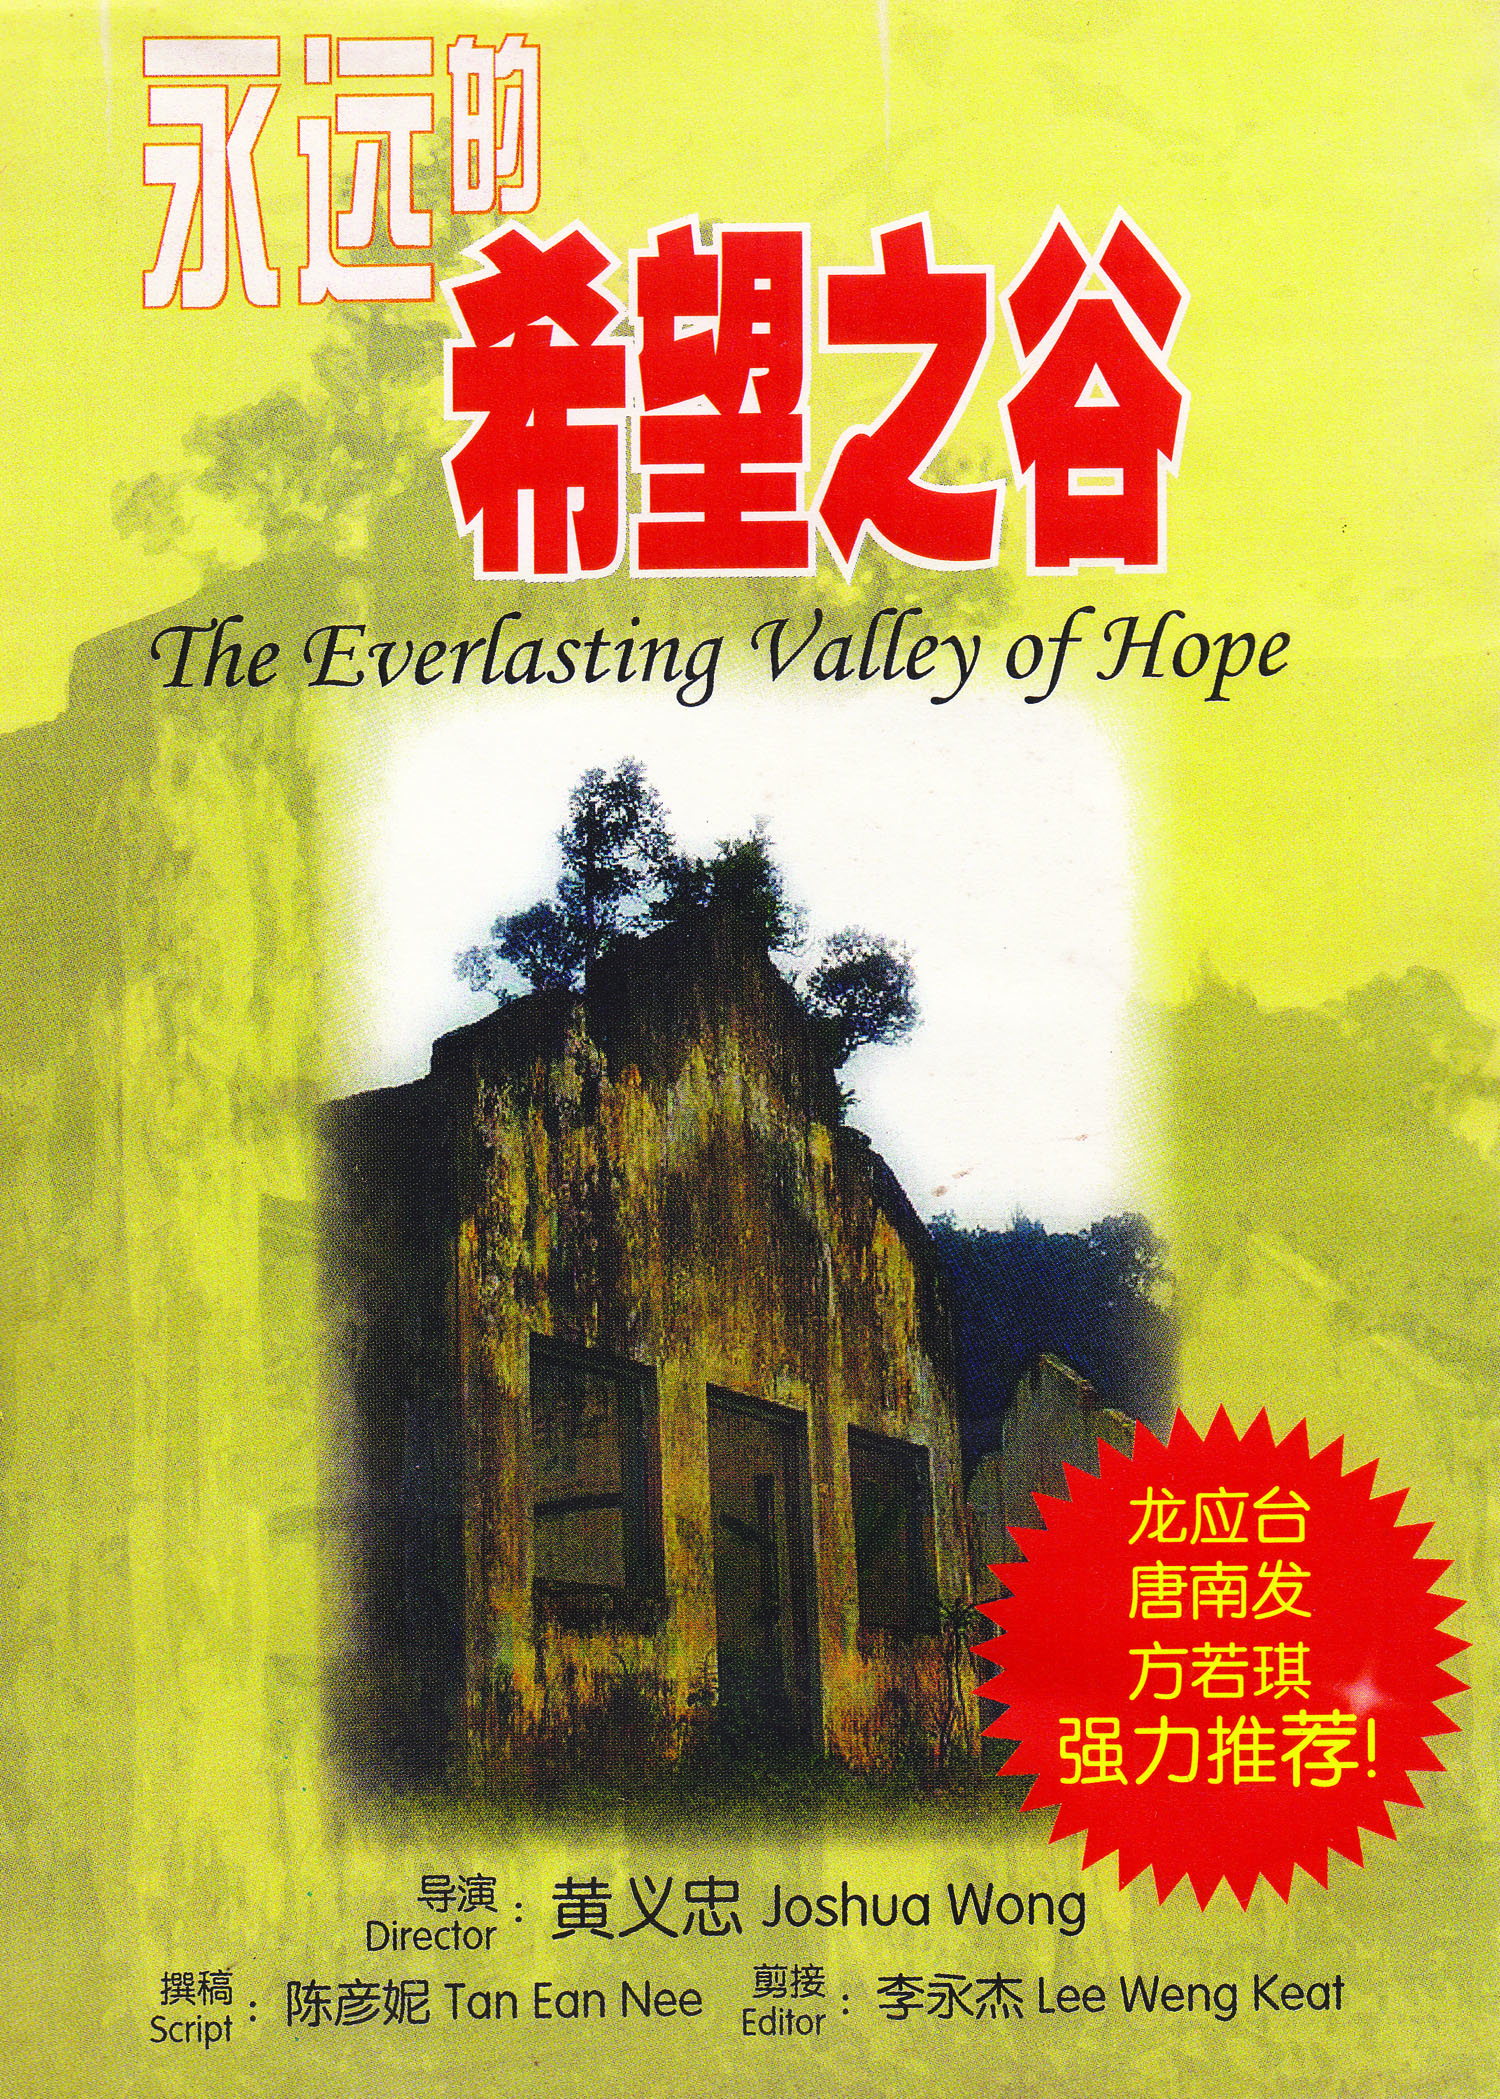 The Everlasting Valley of Hope, Chinese documentary, produced by Joshua Wong & Tan Ean Nee, 2009. (photo by Tan Ean Nee)